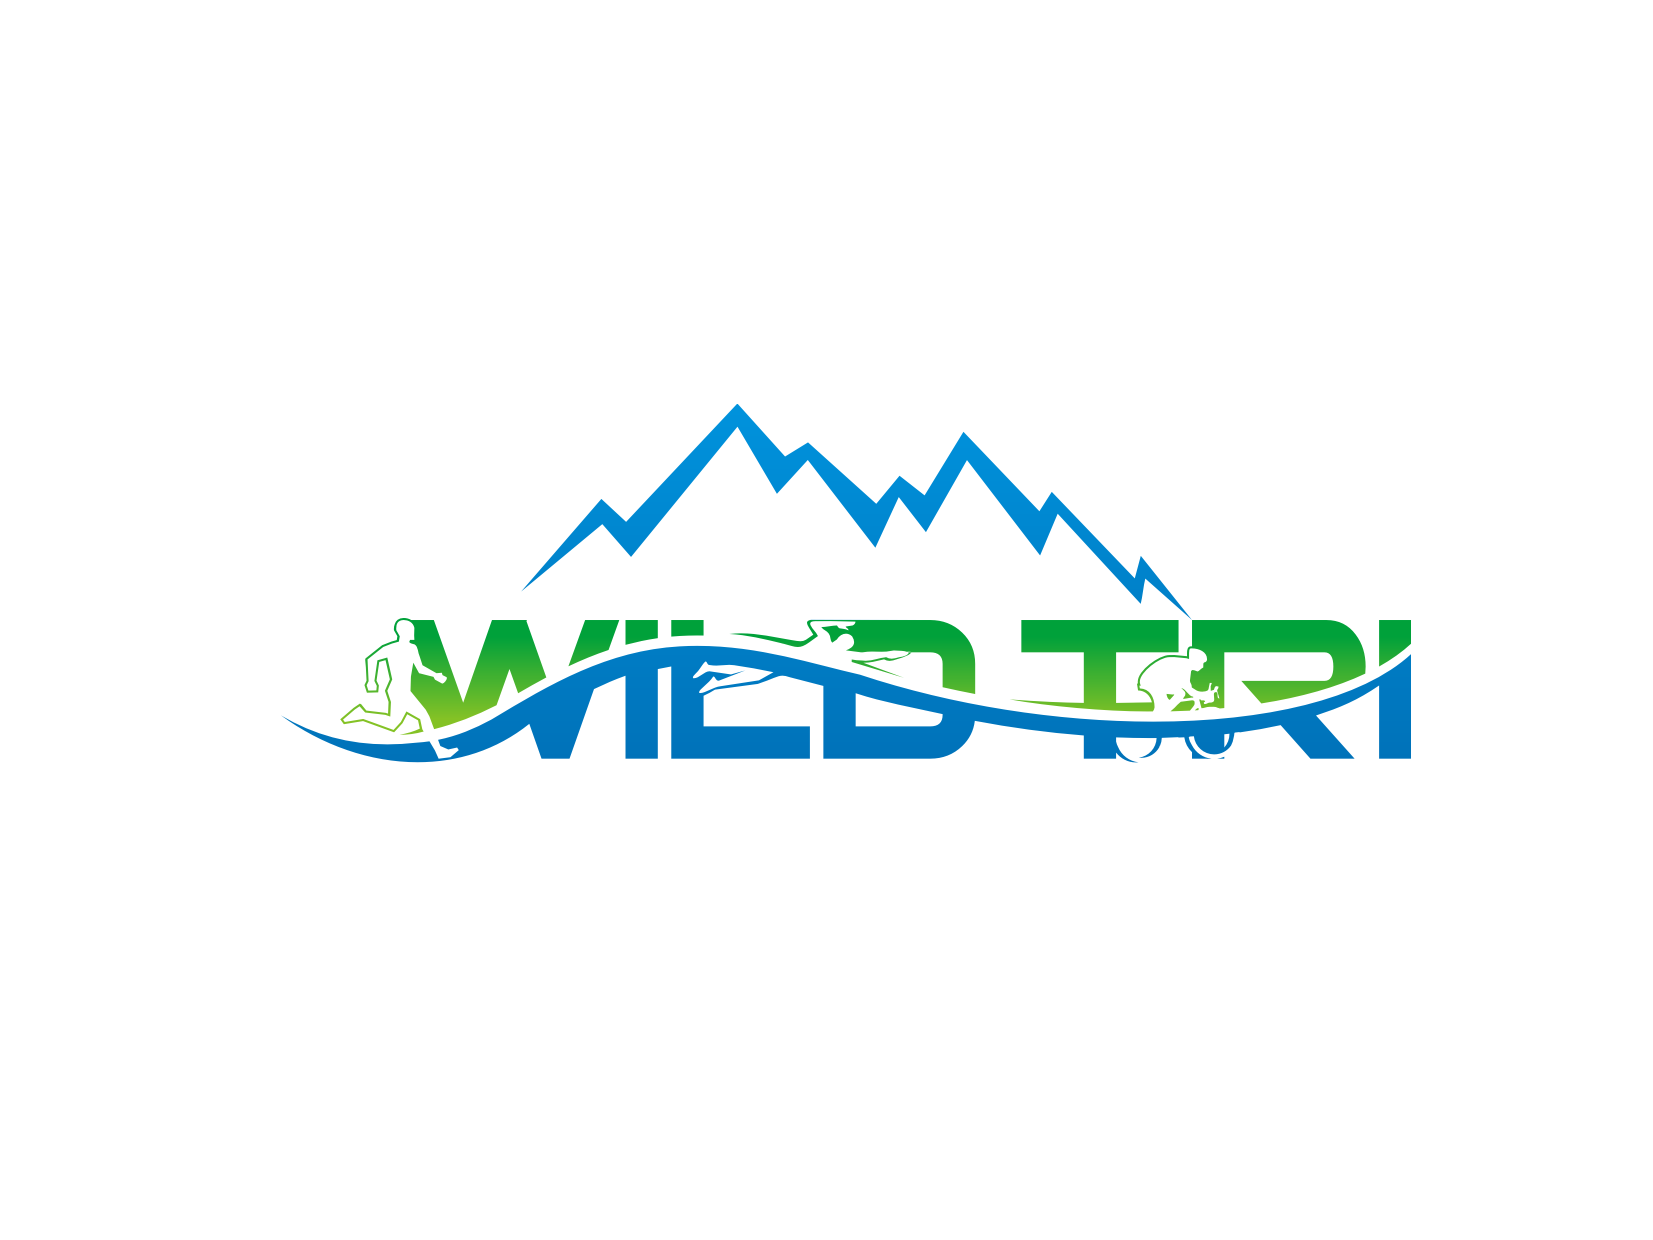 Create the next logo for Wild Tri